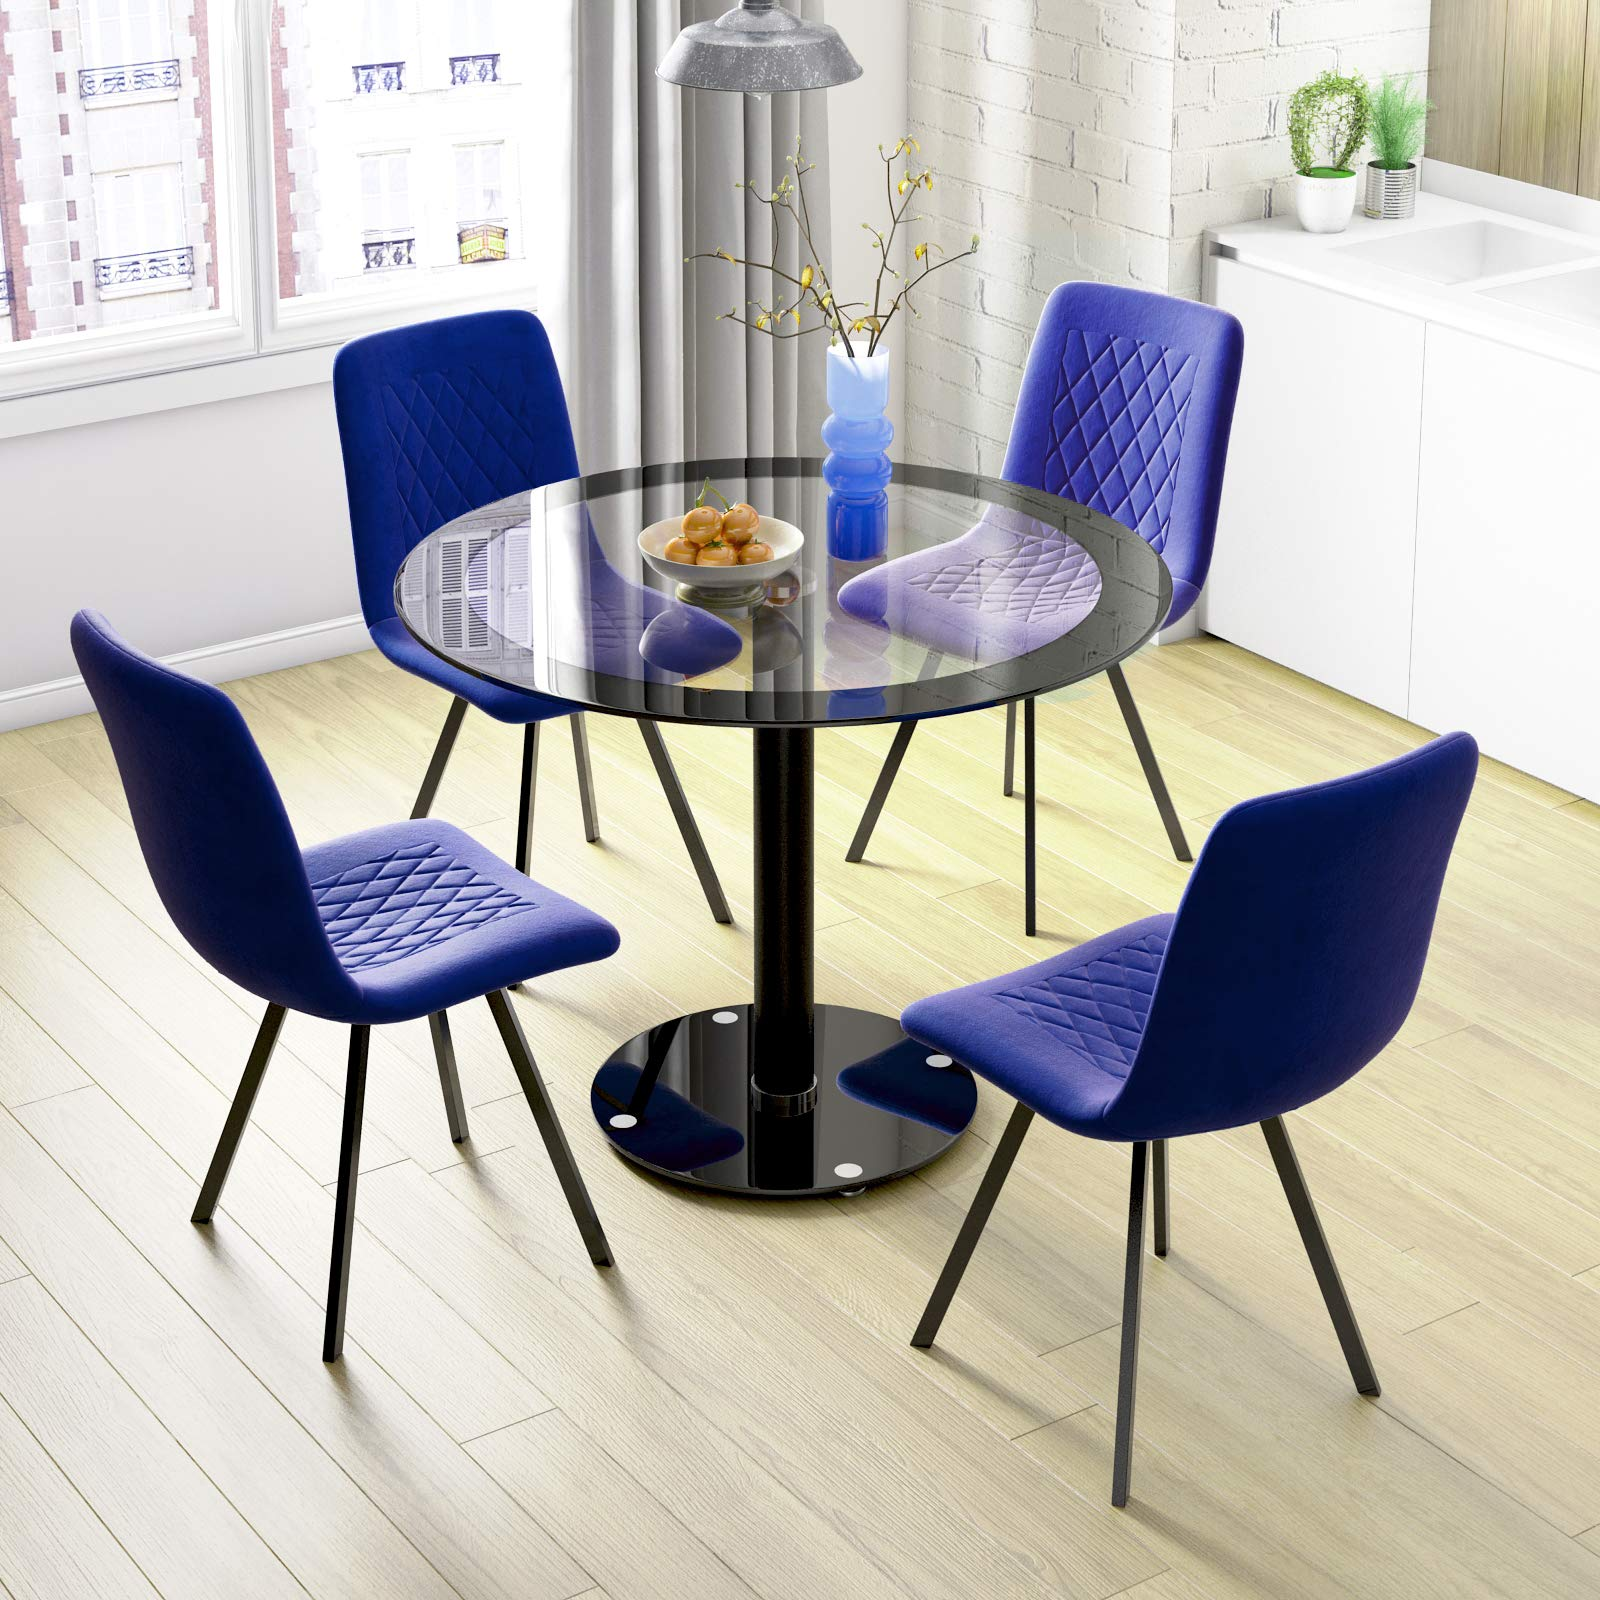 Jeffordoutlet Round Dining Table Chairs Kitchen Black Metal Dining Set Glass Table Top Glass Table Set Of 4 Chairs 2 Buy Online In El Salvador At Elsalvador Desertcart Com Productid 188963561